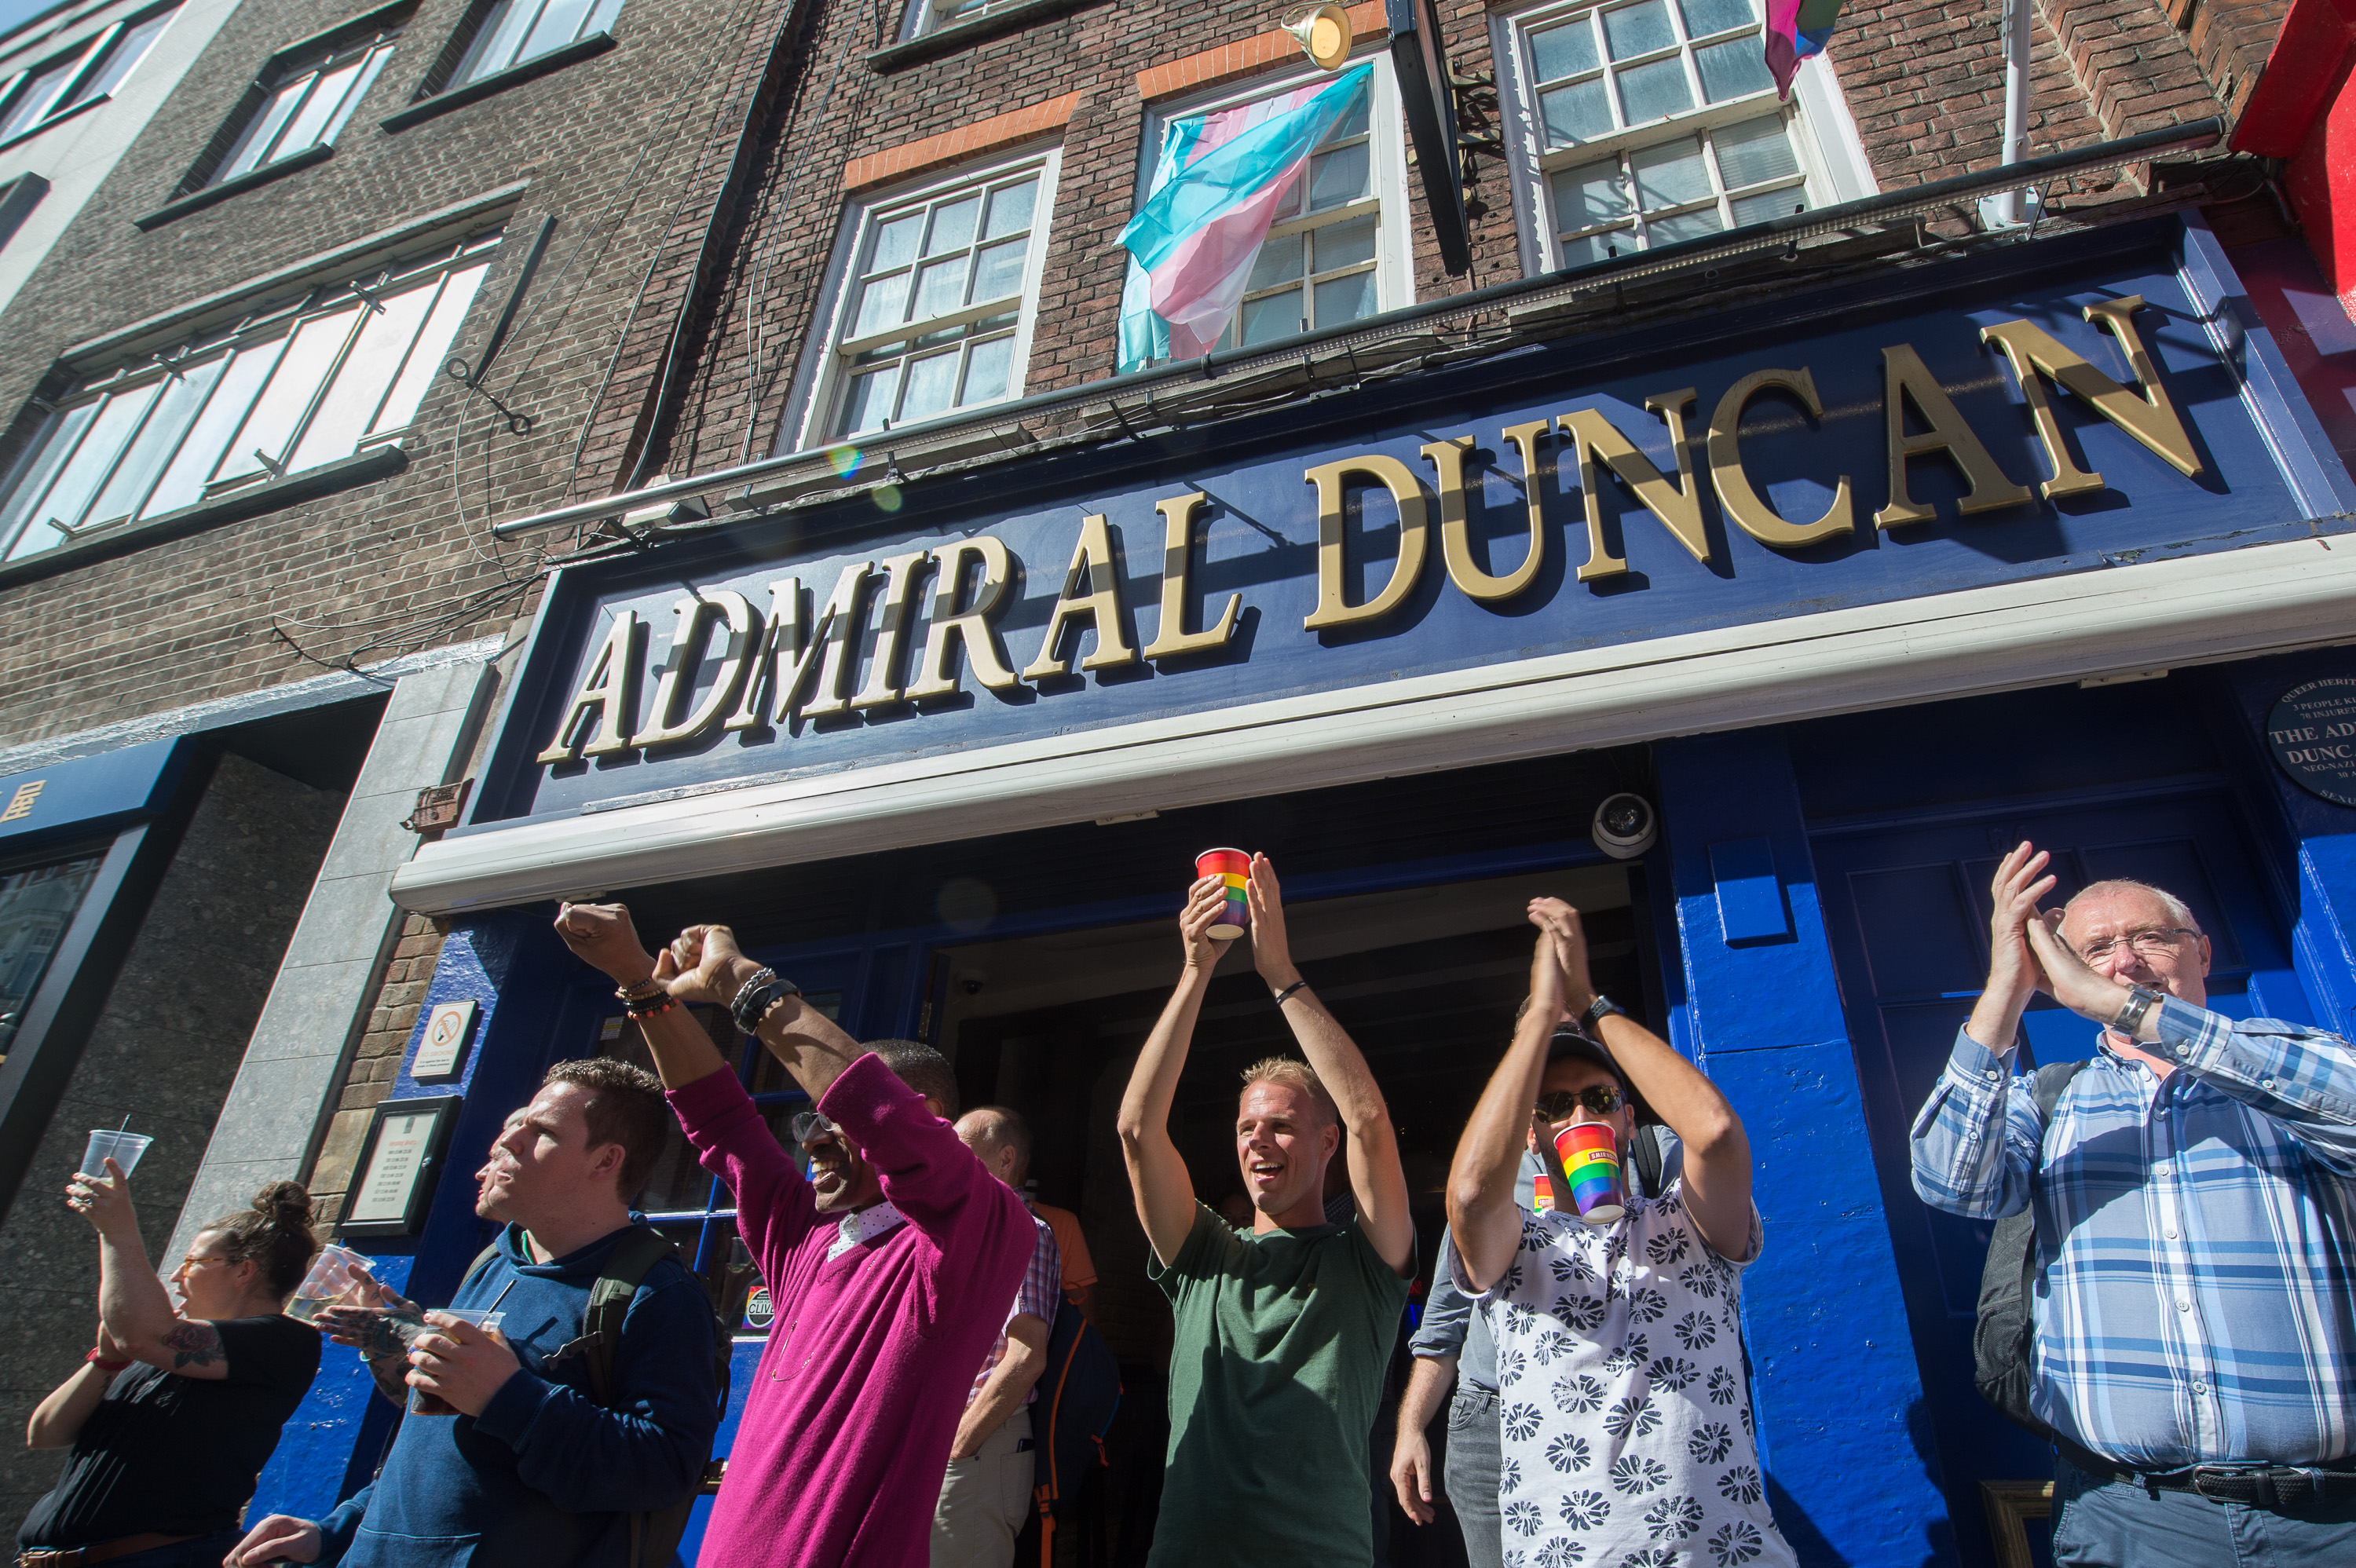 Customers at the Admiral Duncan applaud the 2019 Trans Pride parade.